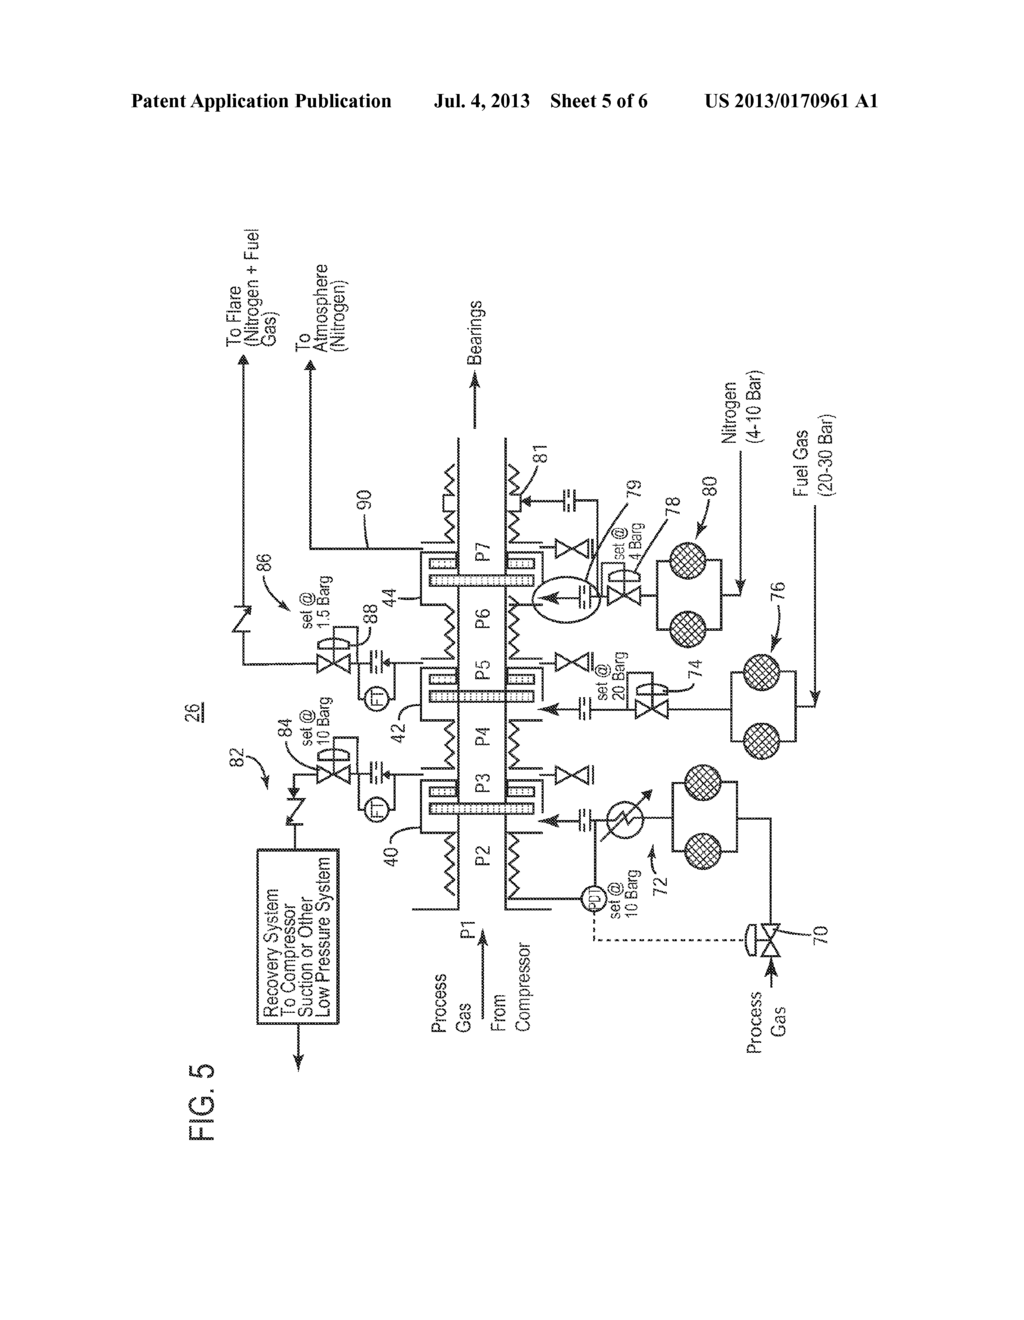 low emission dry gas seal system for compressors diagramlow emission dry gas seal system for compressors diagram, schematic, and image 06